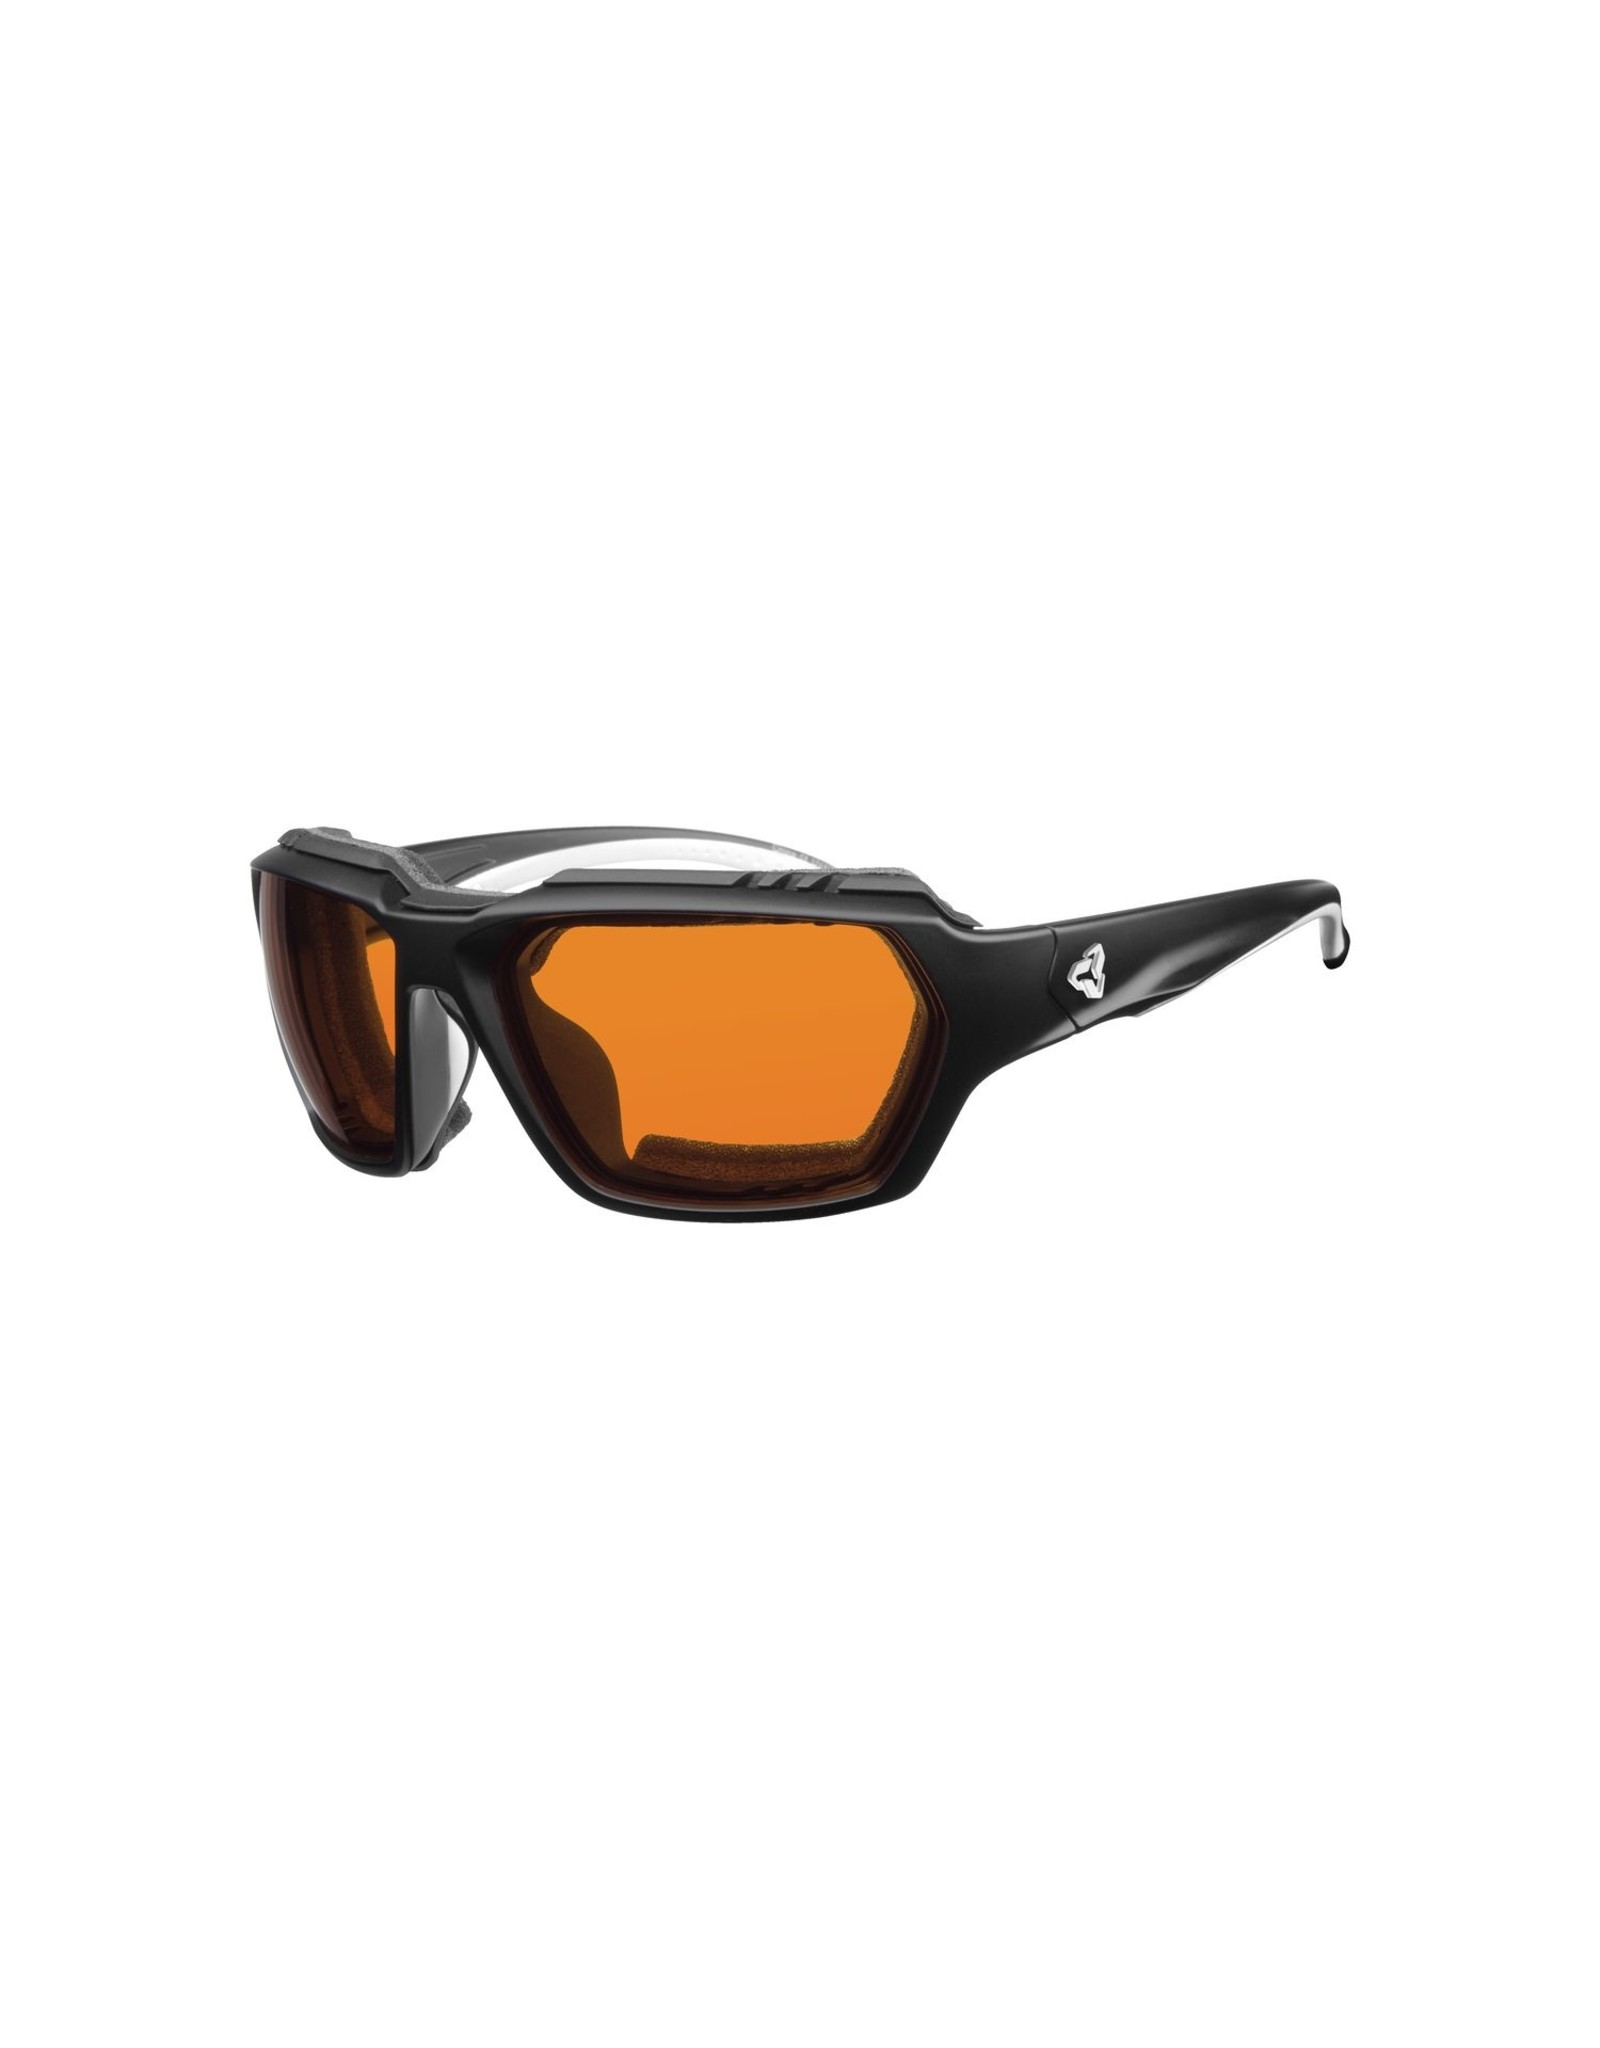 RYDERS FACE GX PHOTO BLACK MATTE / ORANGE LENS 47%-15% ANTI-FOG